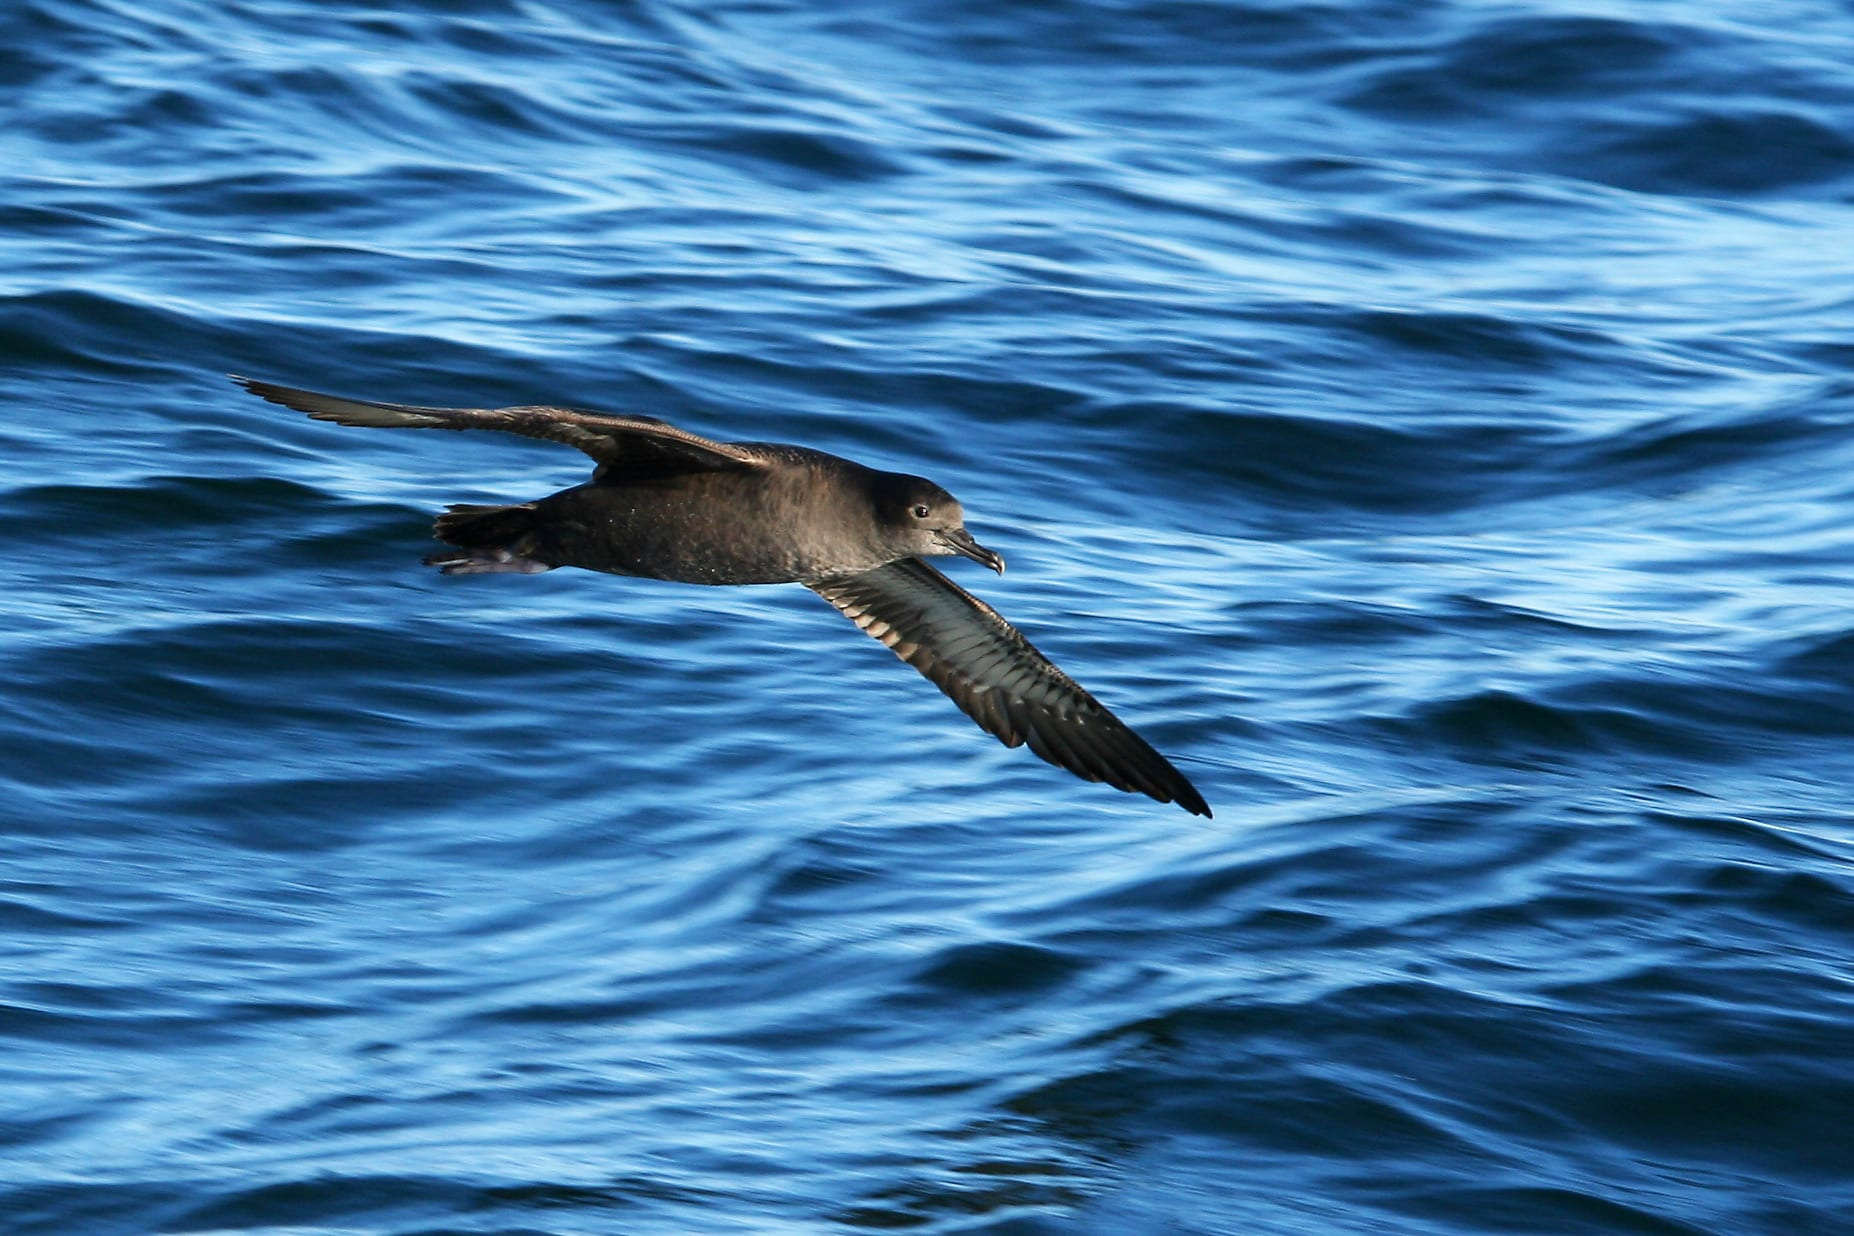 sooty-shearwater-flying-over-the-sea